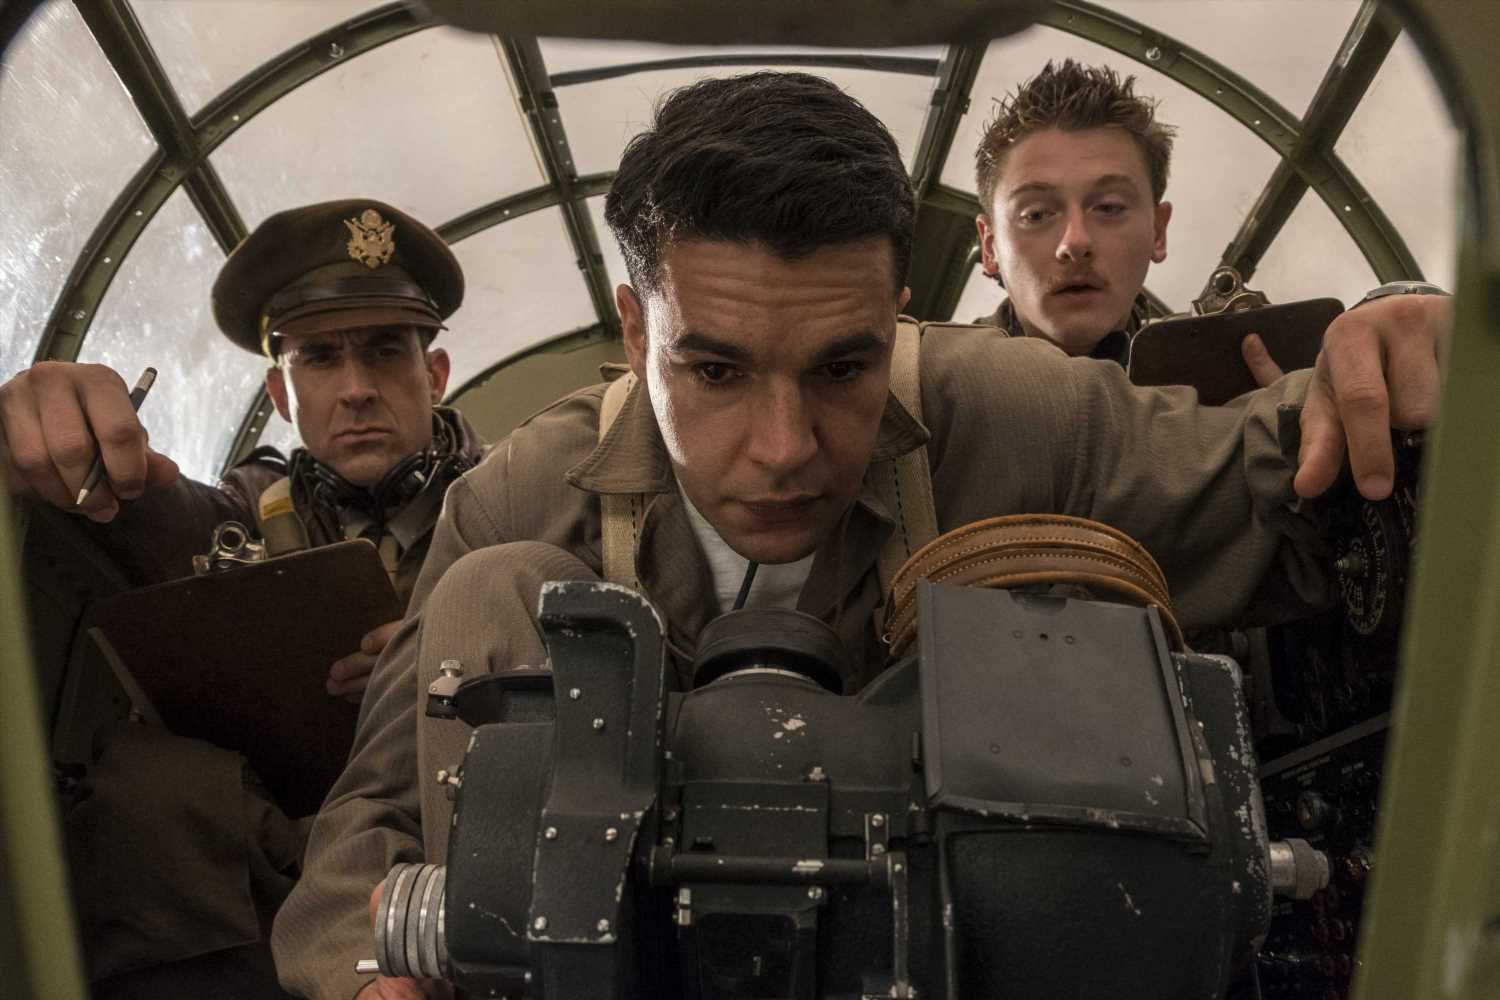 'Catch 22': Shooting the Hellish Aerial Combat Missions With Claustrophobic Authenticity